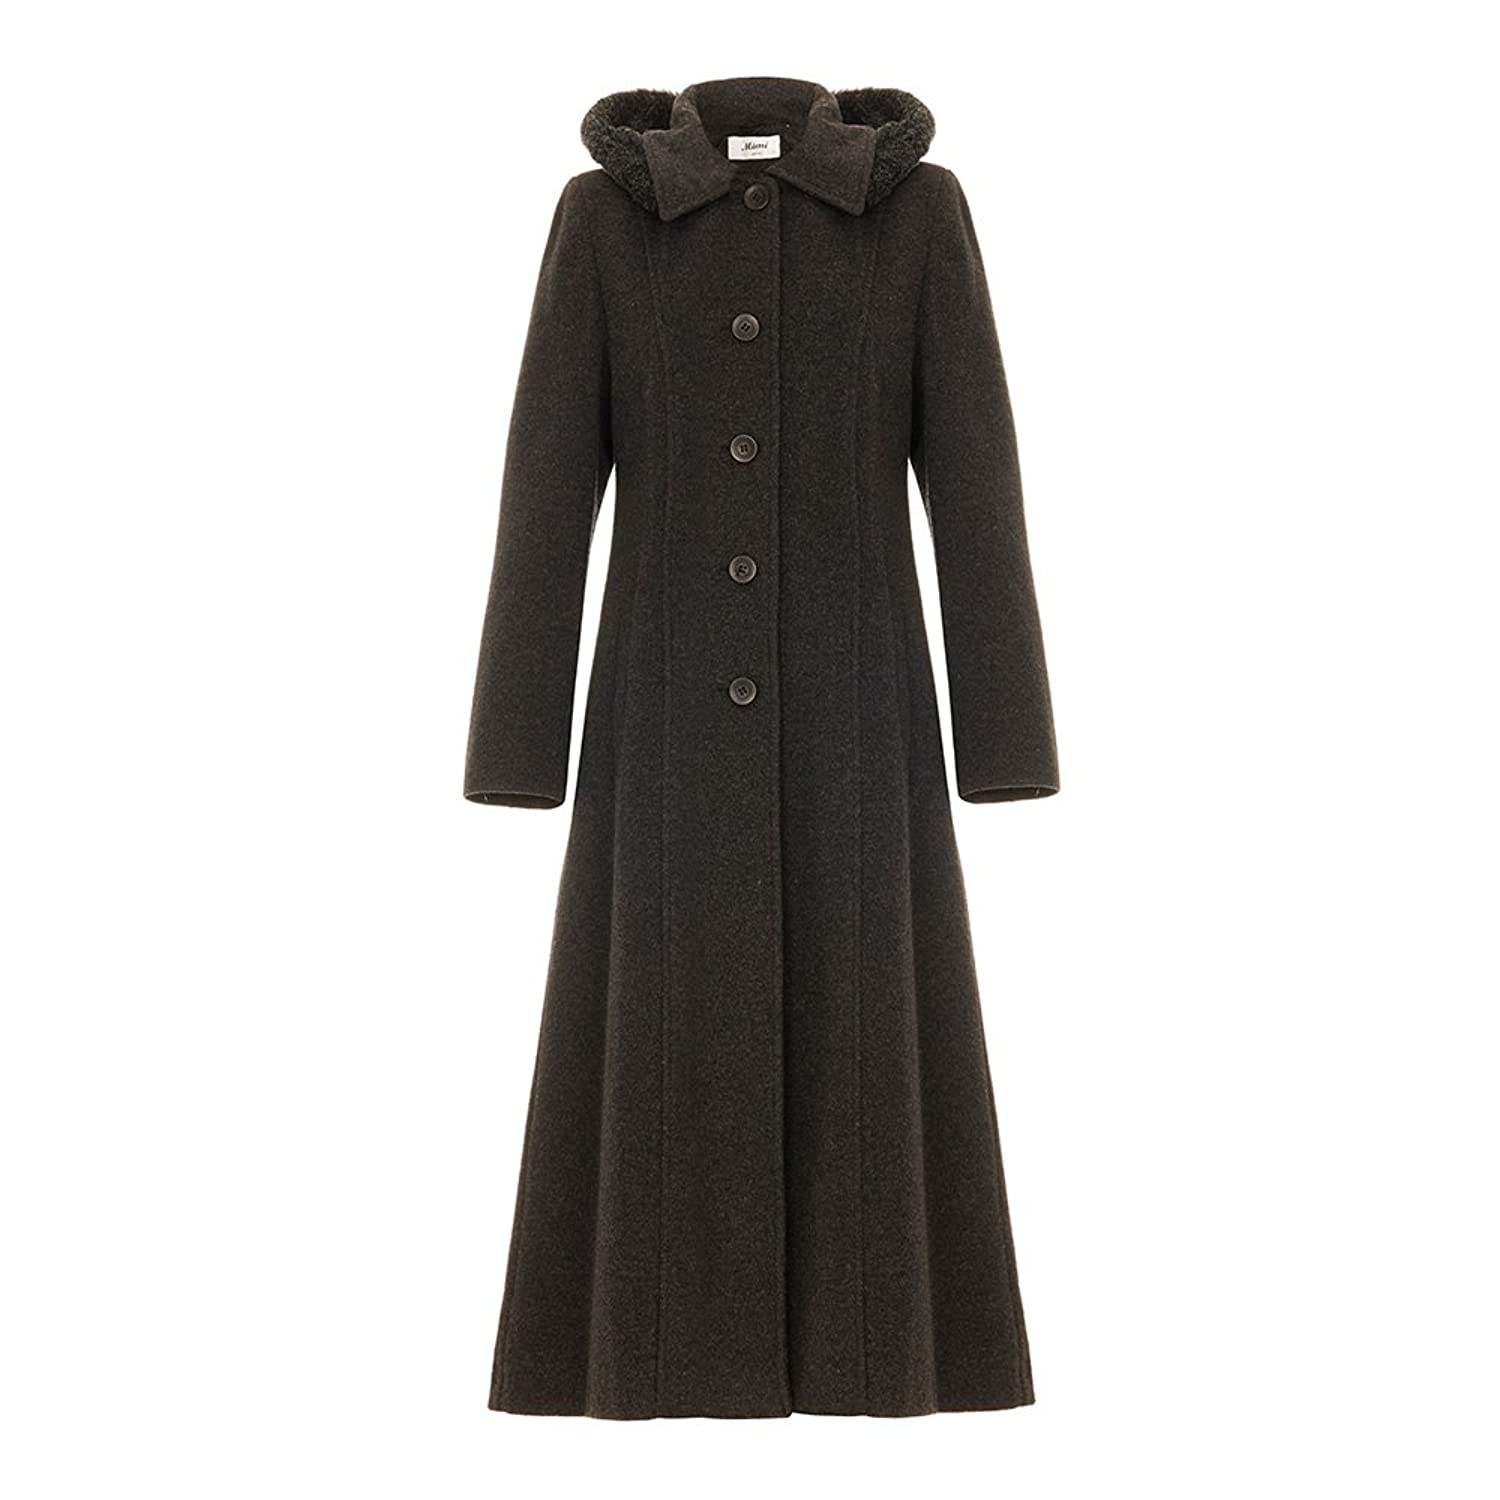 1930s Style Coats, Jackets | Art Deco Outerwear De La Creme Single Breasted Detachable Fur Hood Wool Winter Trench Winter Coat $149.99 AT vintagedancer.com